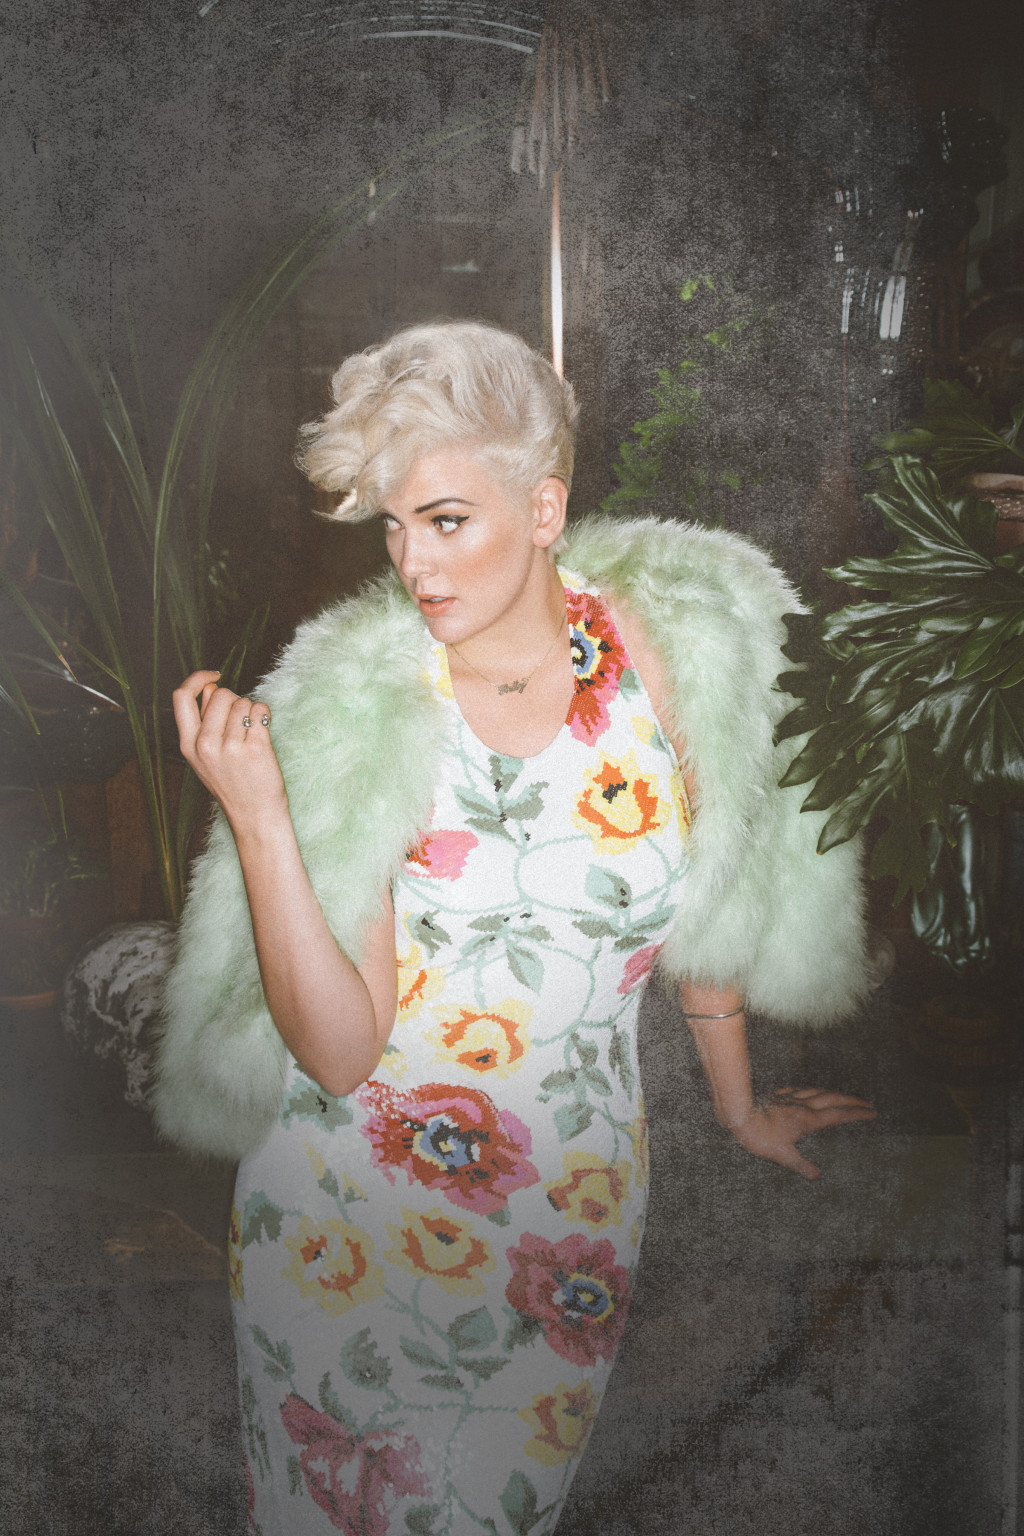 Sony_BettyWho-1686_D-61595945